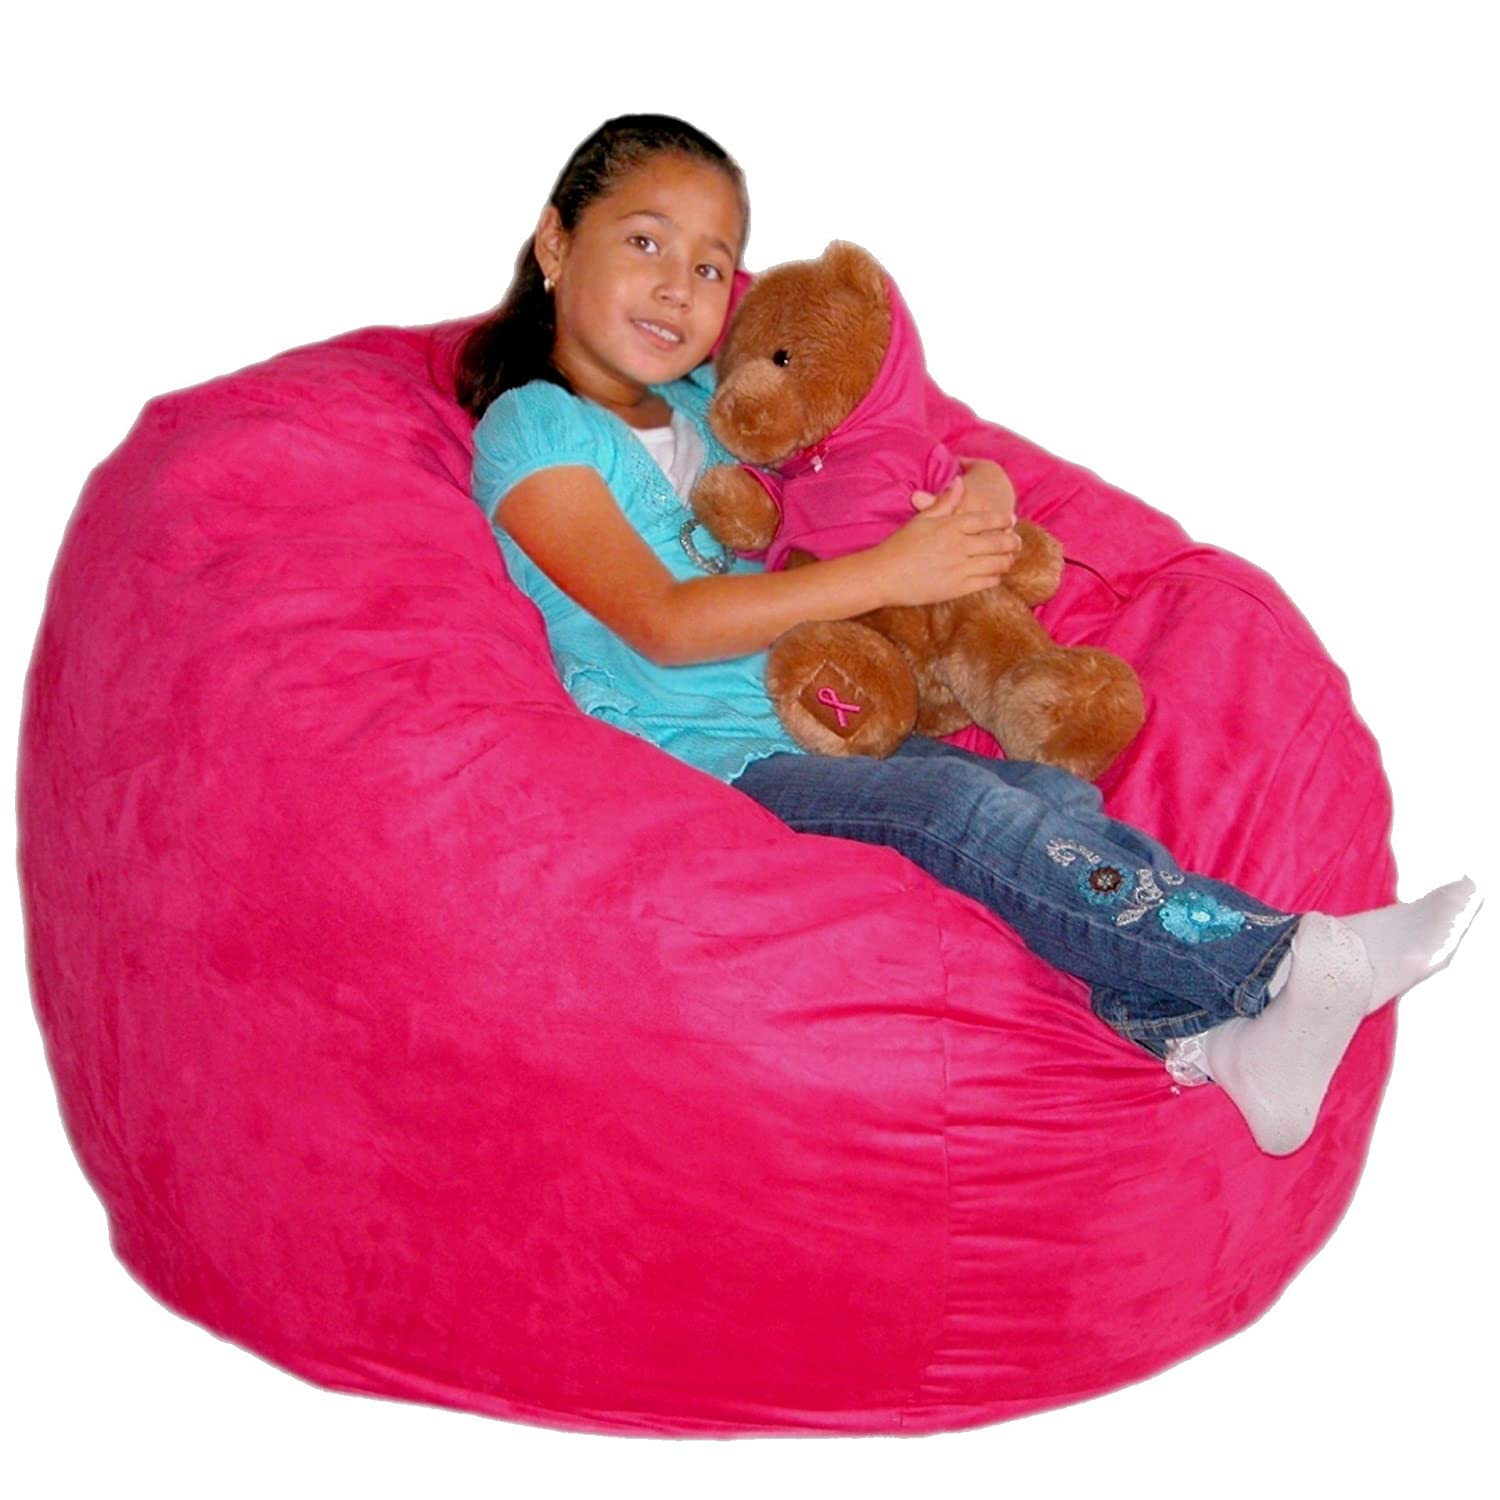 Superior Amazon.com: Cozy Sack 3 Feet Bean Bag Chair, Medium, Hot Pink: Kitchen U0026  Dining